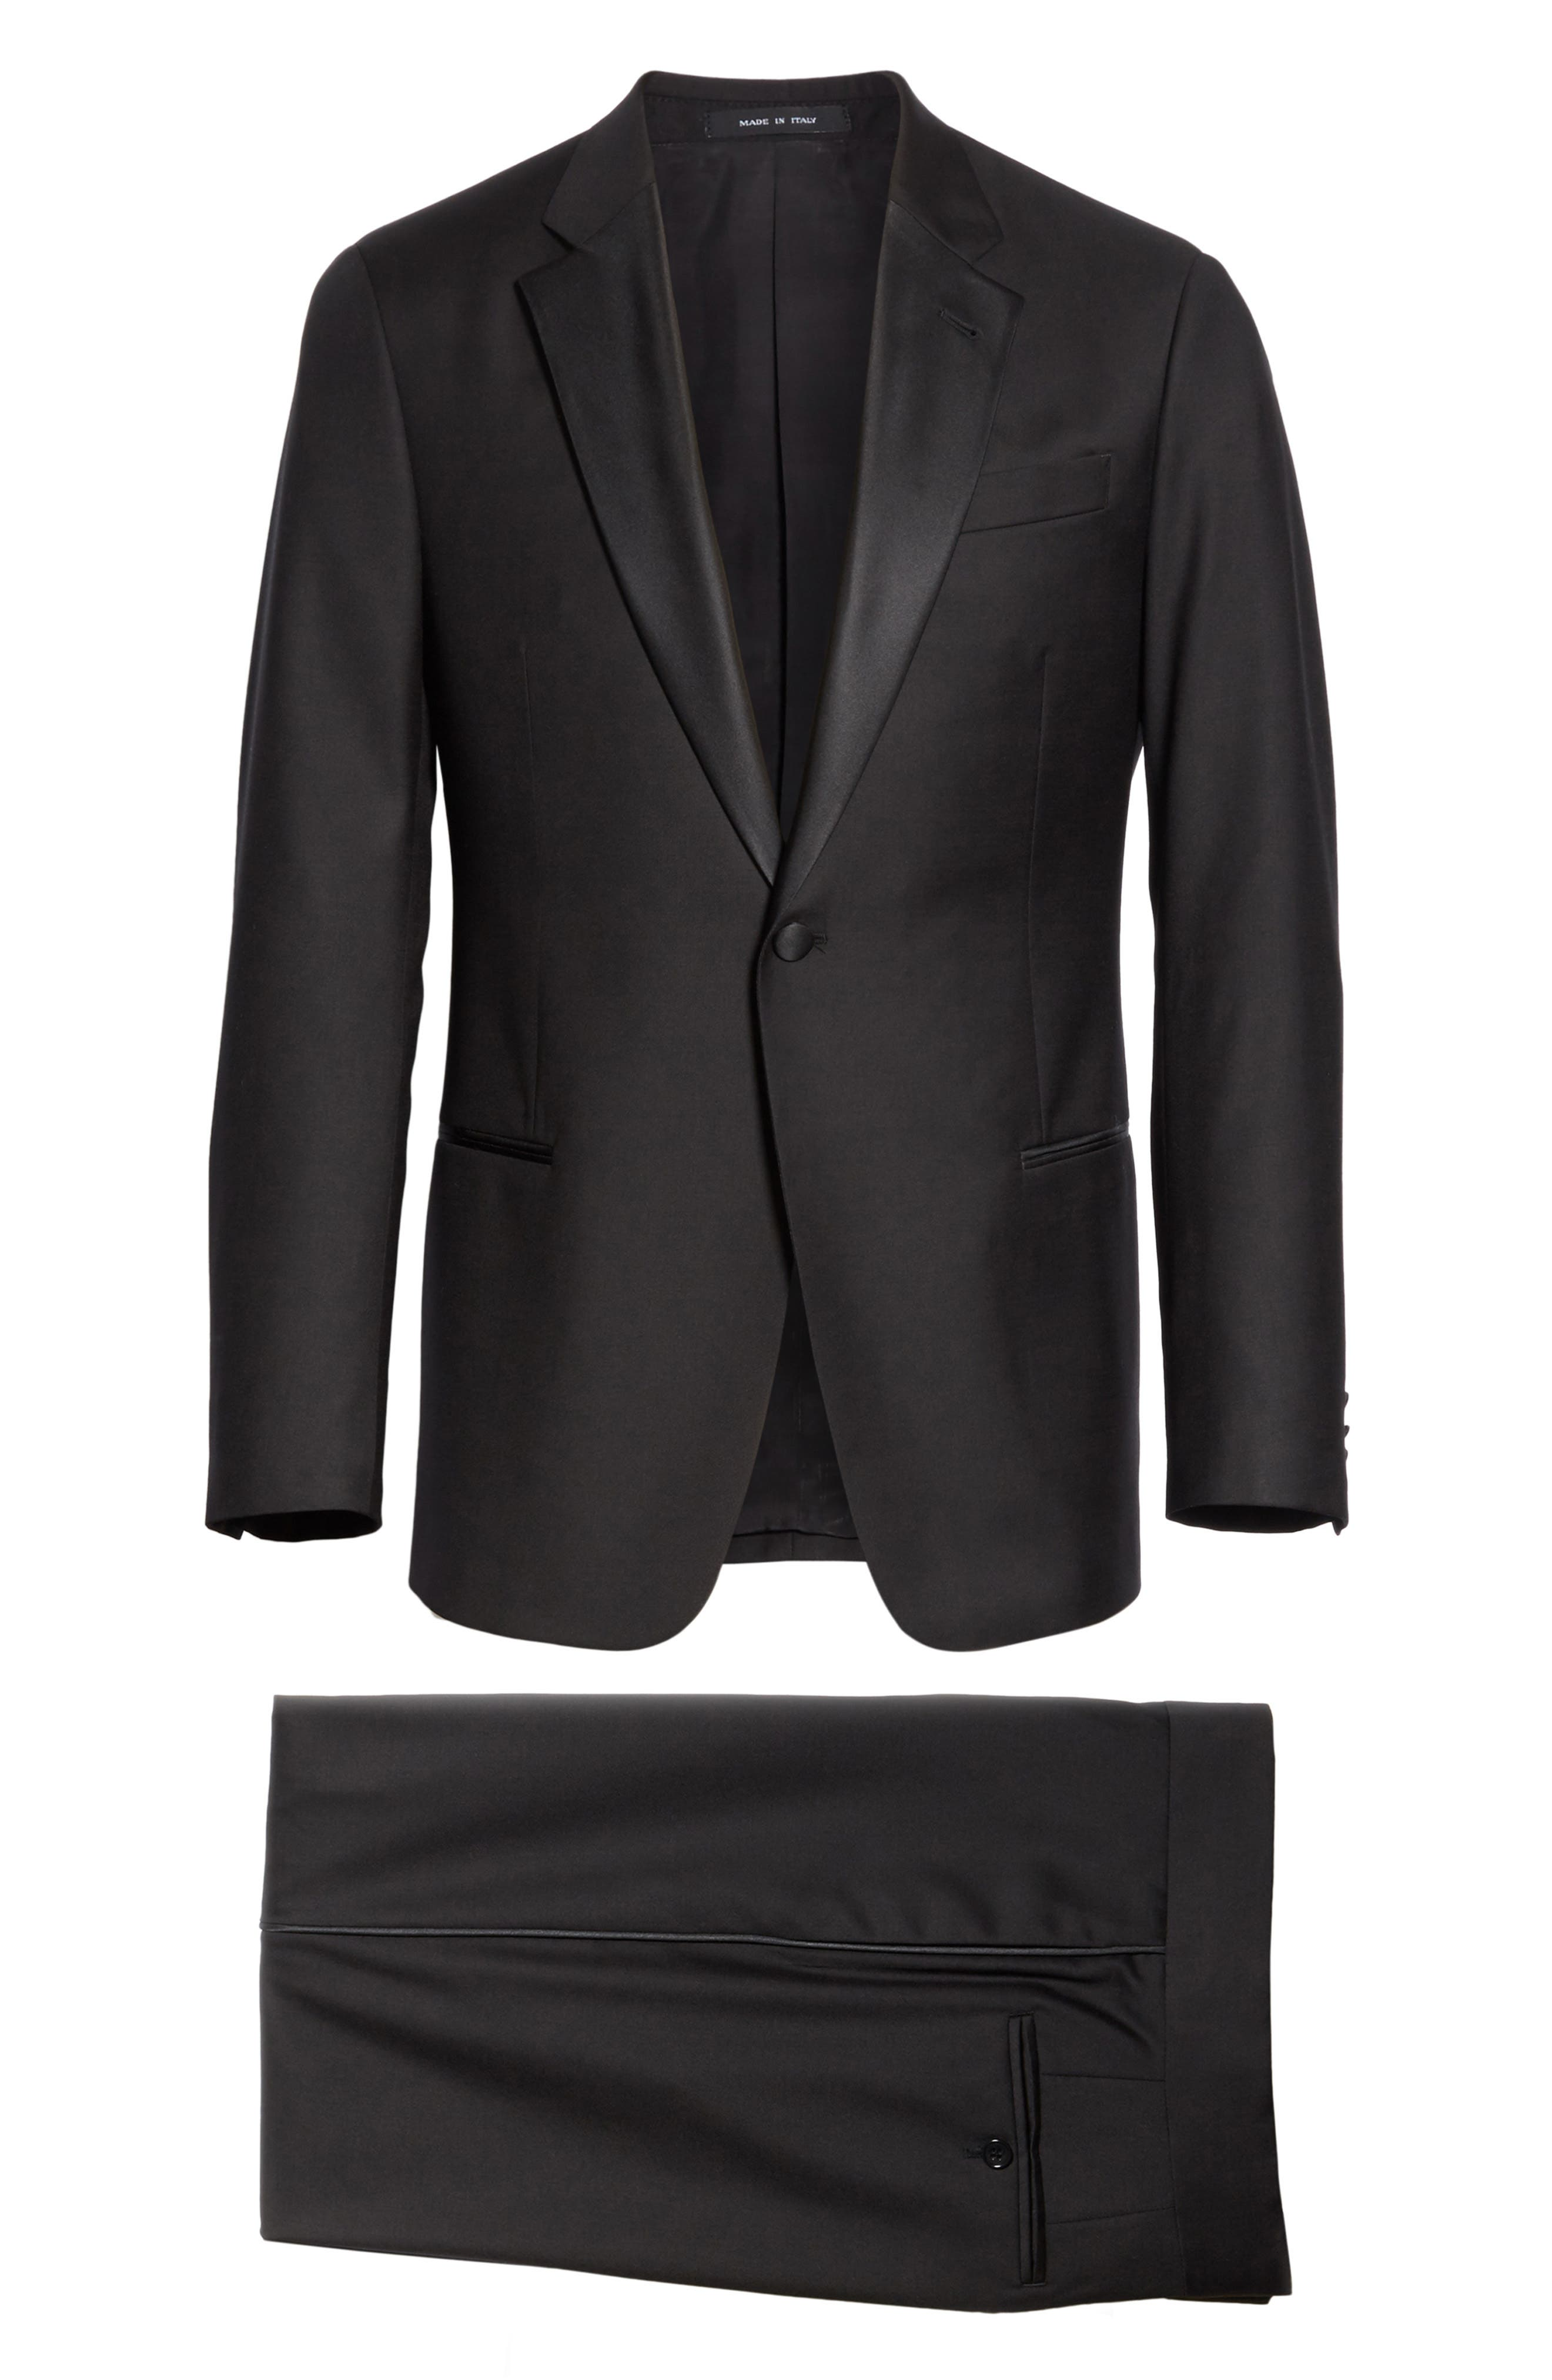 Trim Fit Wool Tuxedo,                             Alternate thumbnail 8, color,                             BLACK